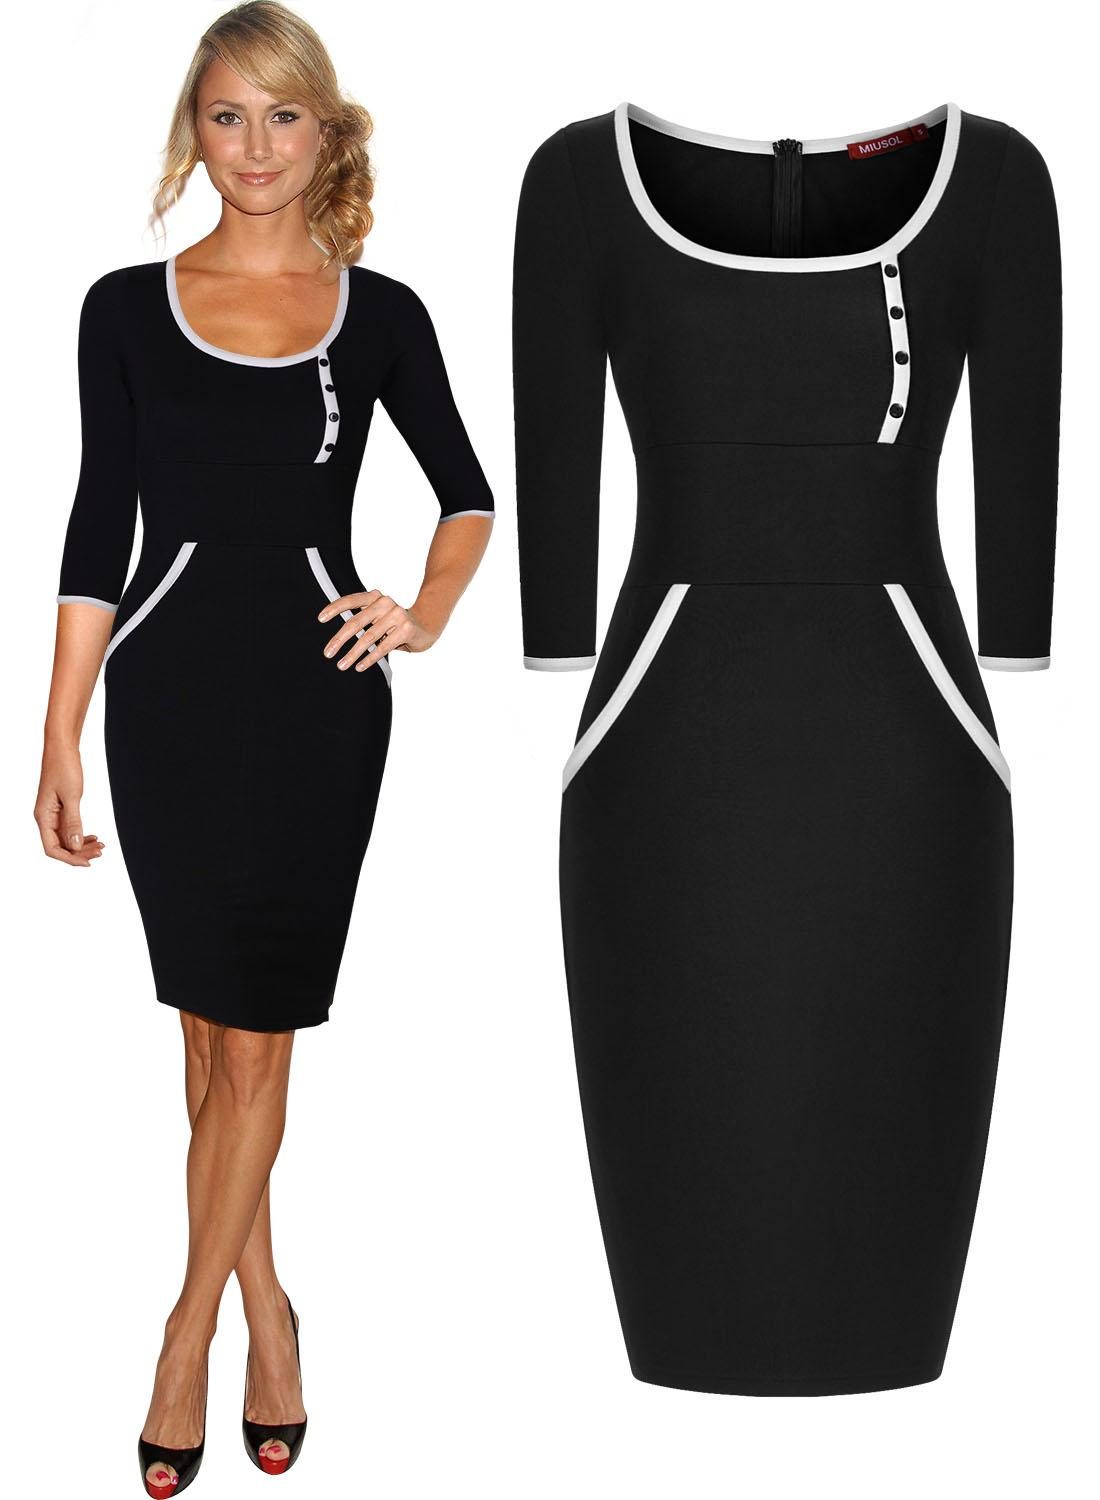 Women s Celeb Bodycon Evening Sexy Pencil Party Cocktail Work Casual Dresses  Work Dress 3122 Women Dress Work Dress Pencil Dresses Online with   35.92 Piece ... ae914a863b37